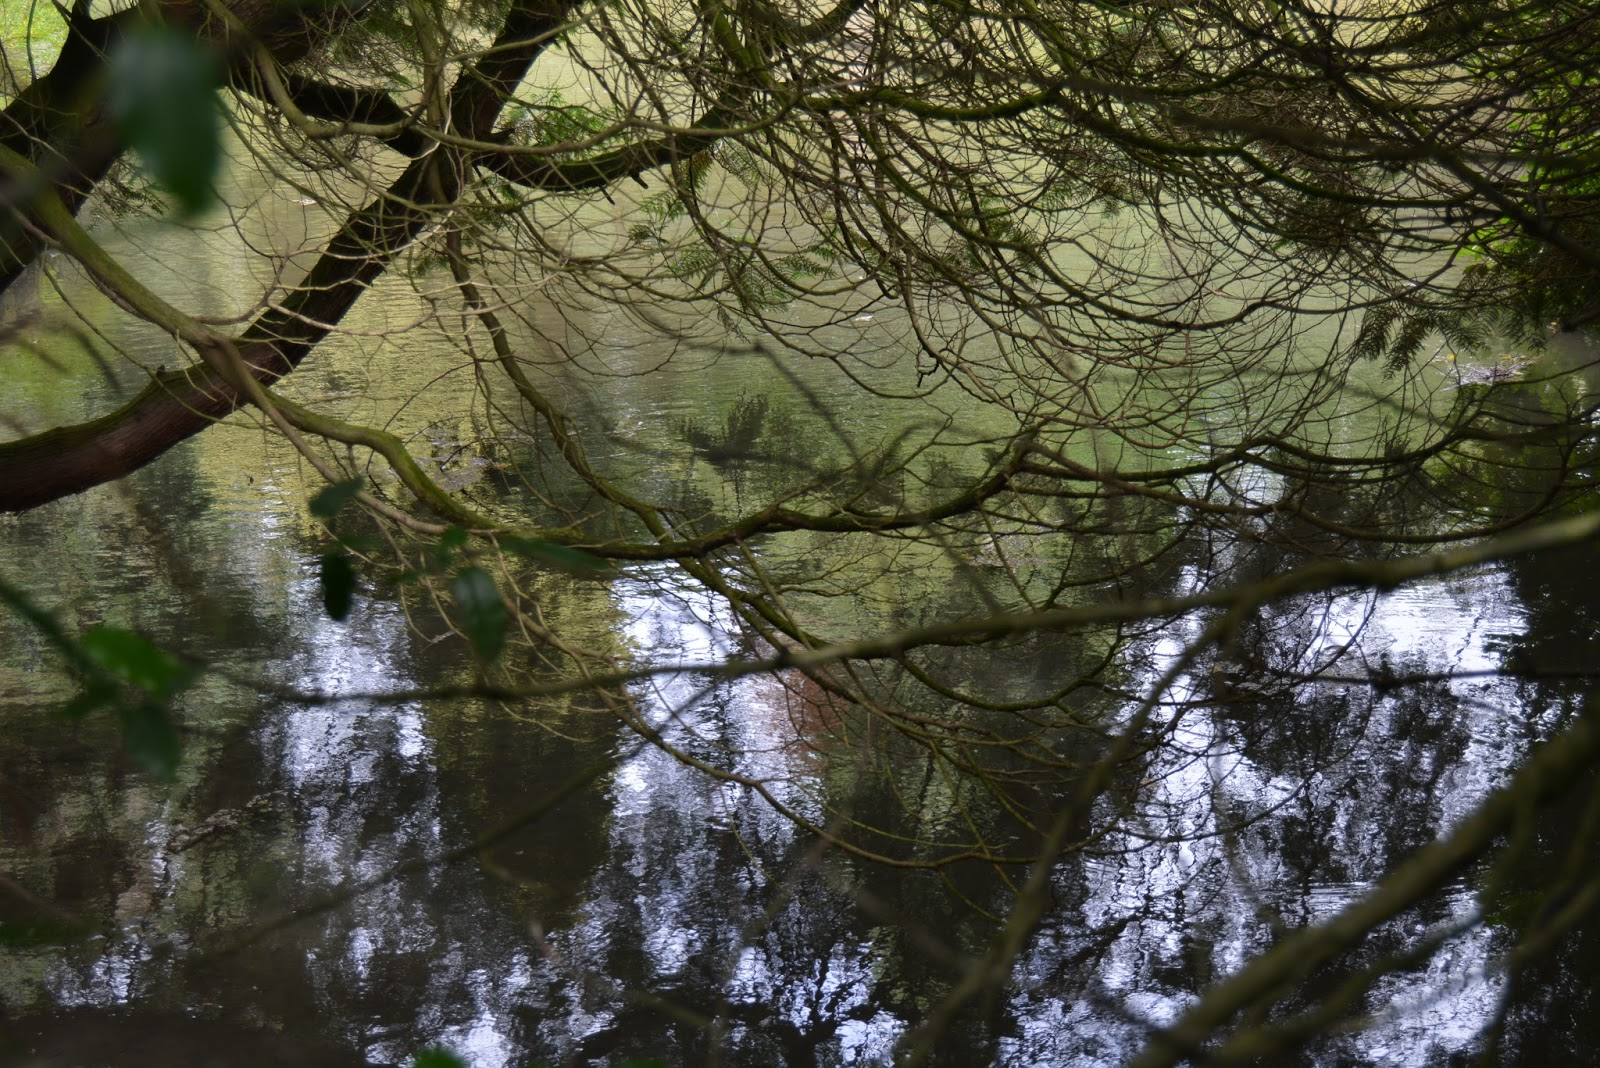 Forest, woods, reflections, photography, beauty, landscape, trees, nature